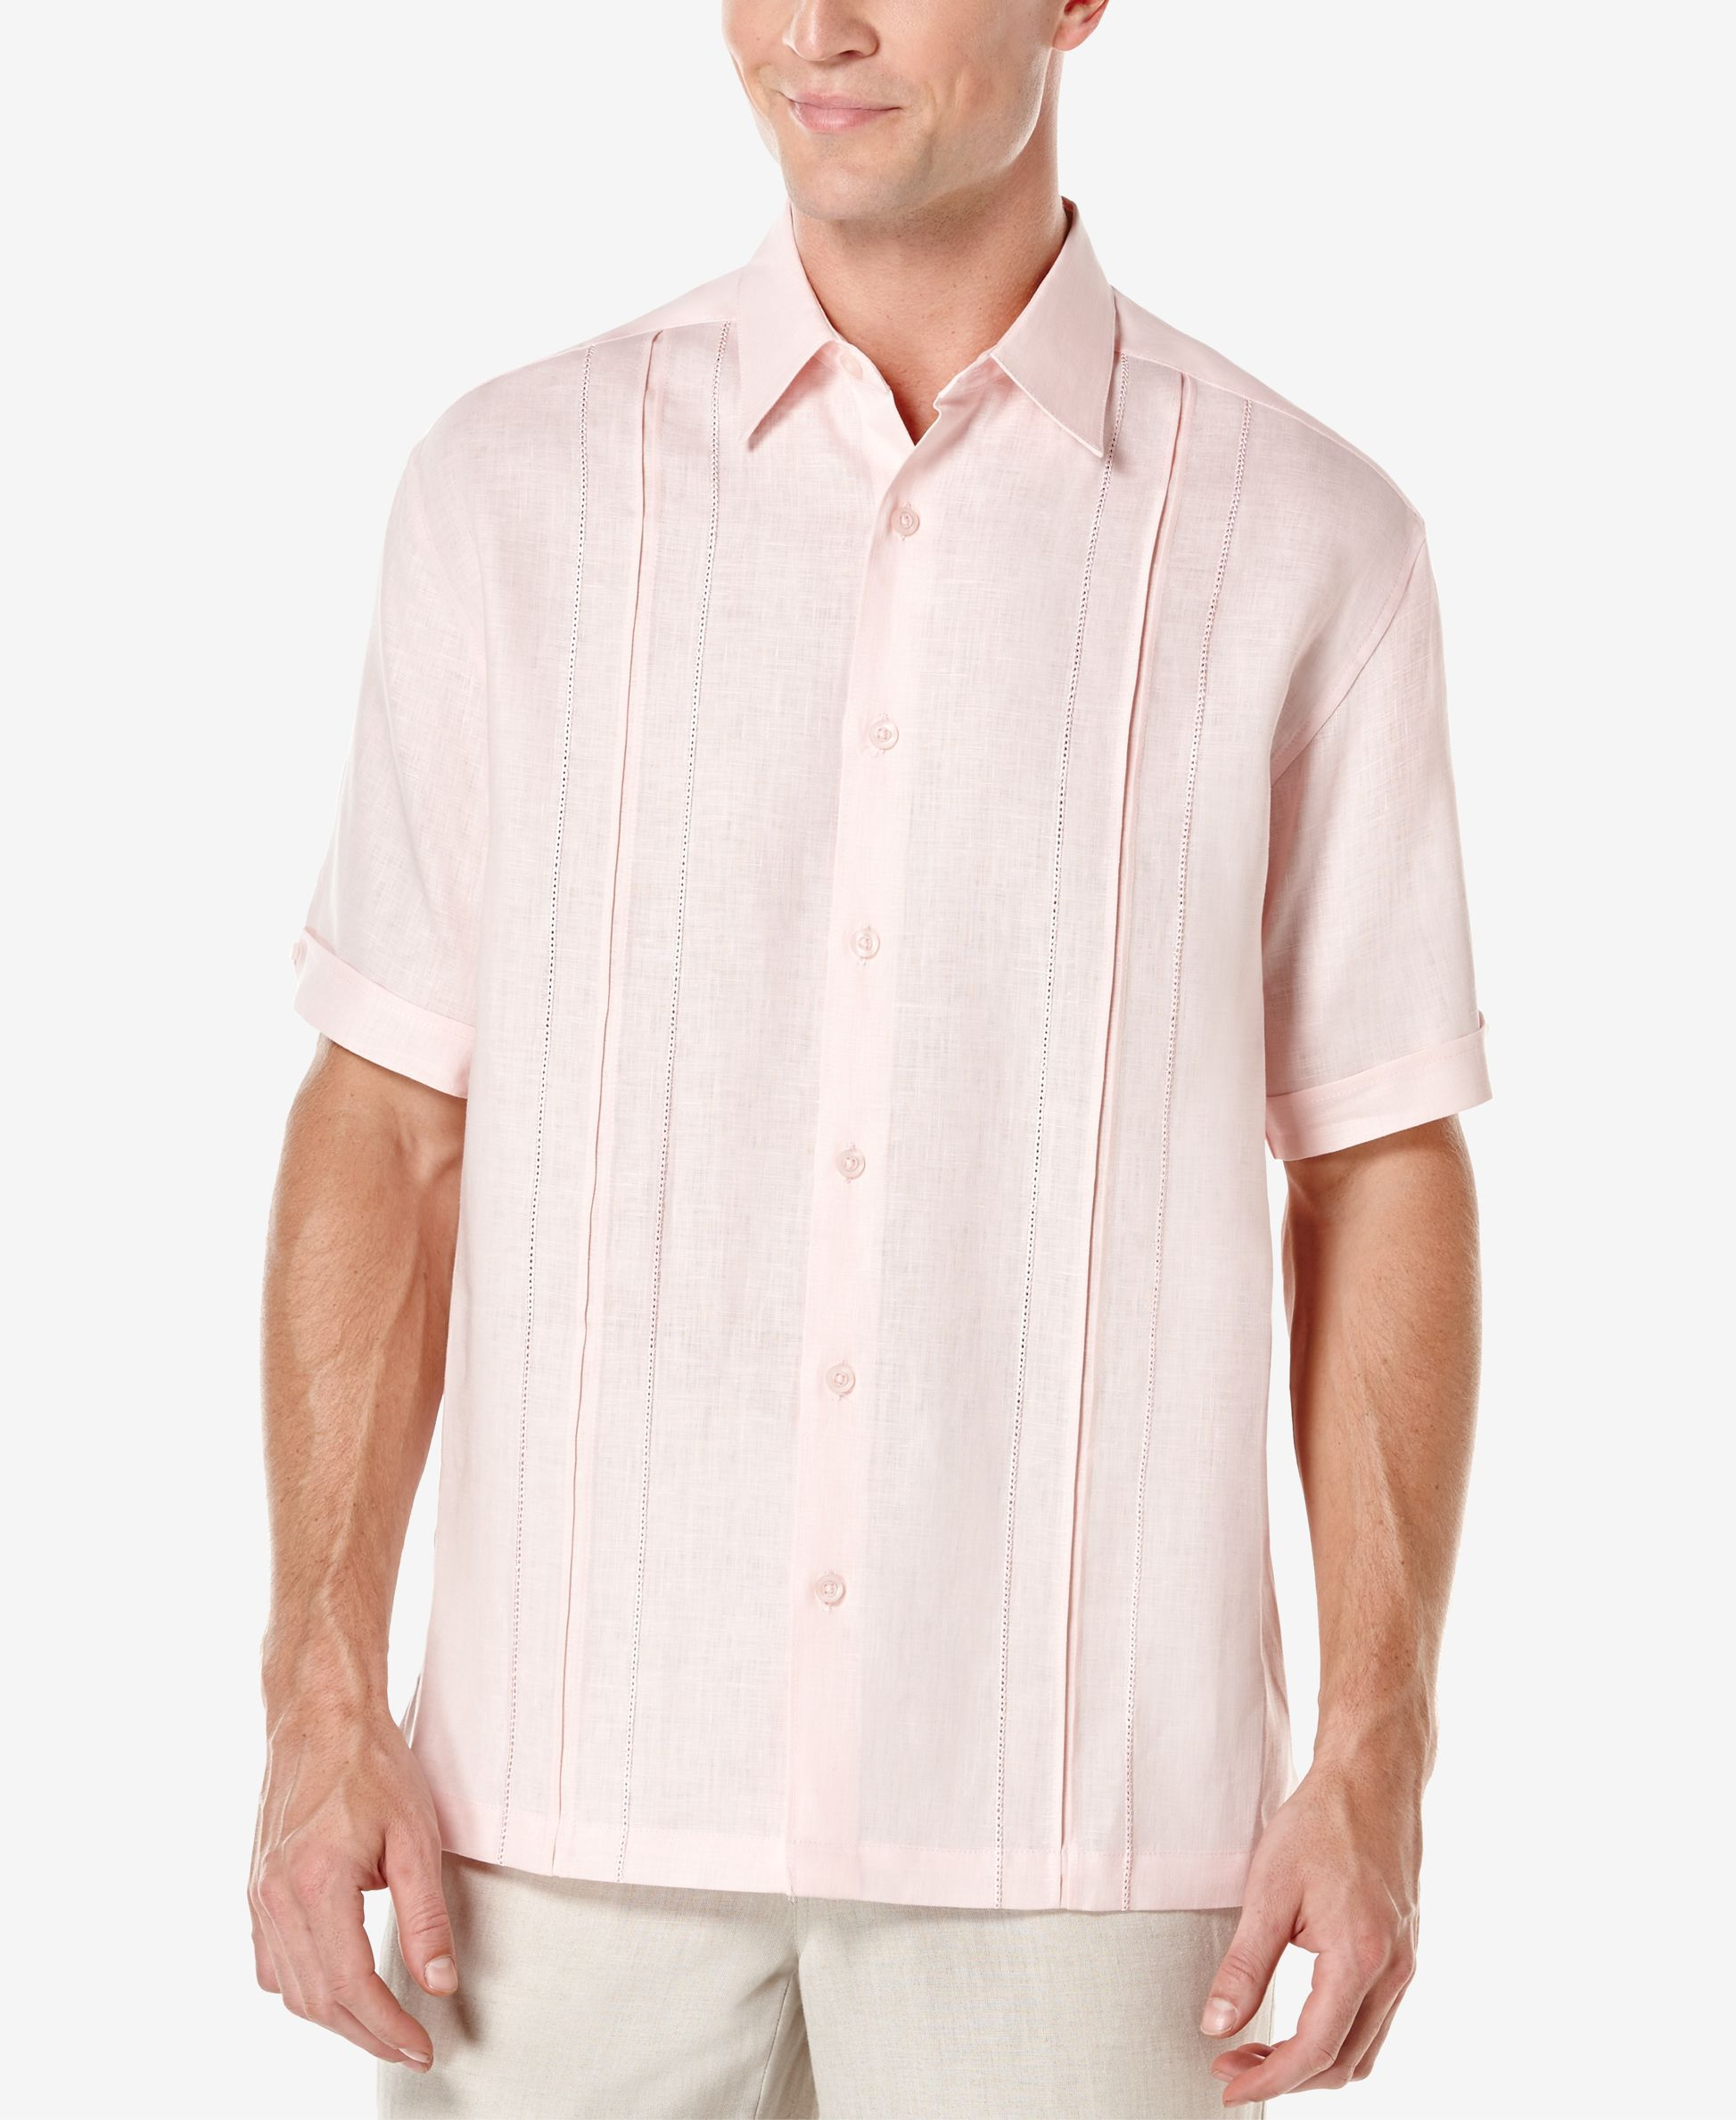 Cubavera Mens Short-Sleeve Yarn-dye Shirt with Embroidery